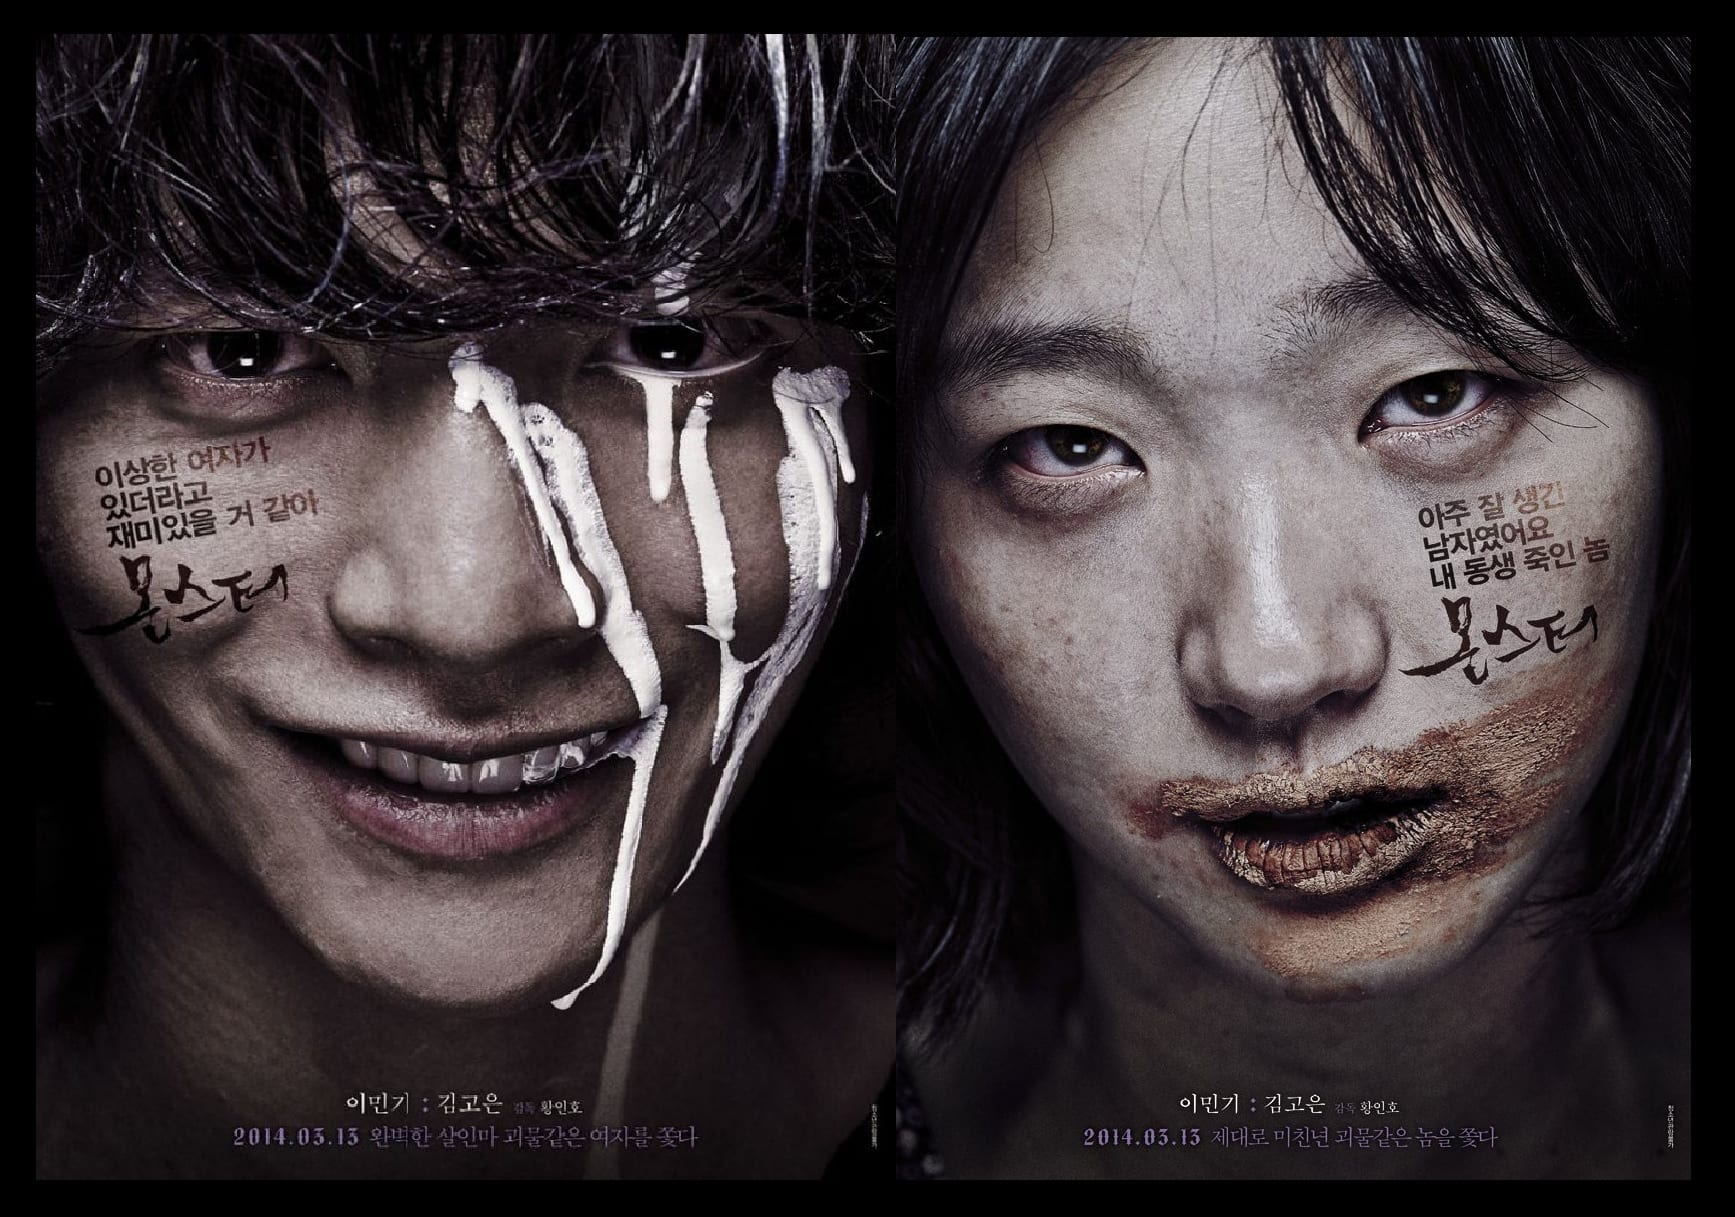 Five Of The Greatest And Goriest Korean Revenge Films To Watch This Halloween